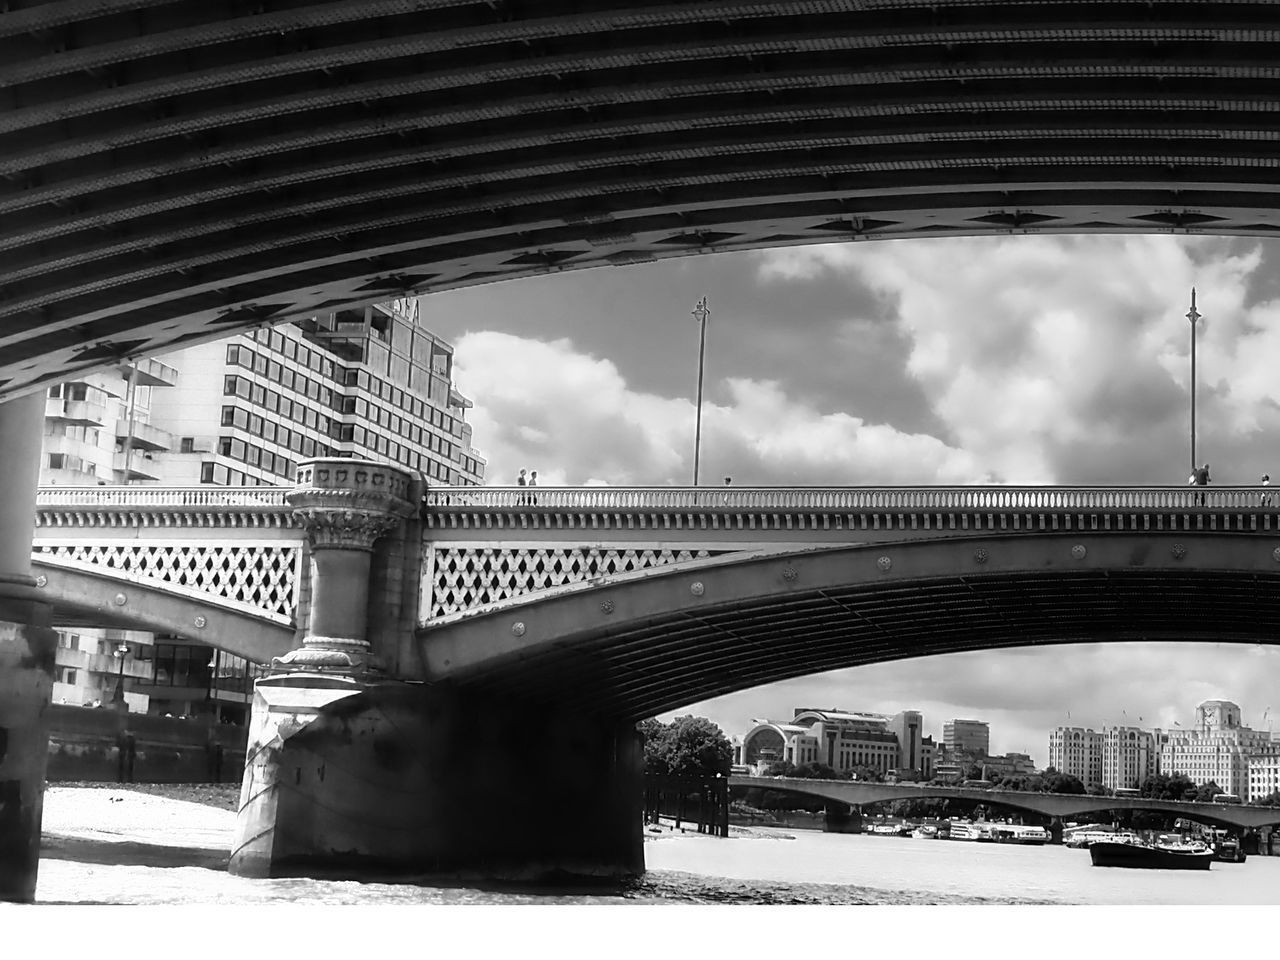 architecture, bridge - man made structure, connection, built structure, cloud - sky, sky, river, water, transportation, day, arch, building exterior, bridge, city, outdoors, modern, no people, cityscape, under